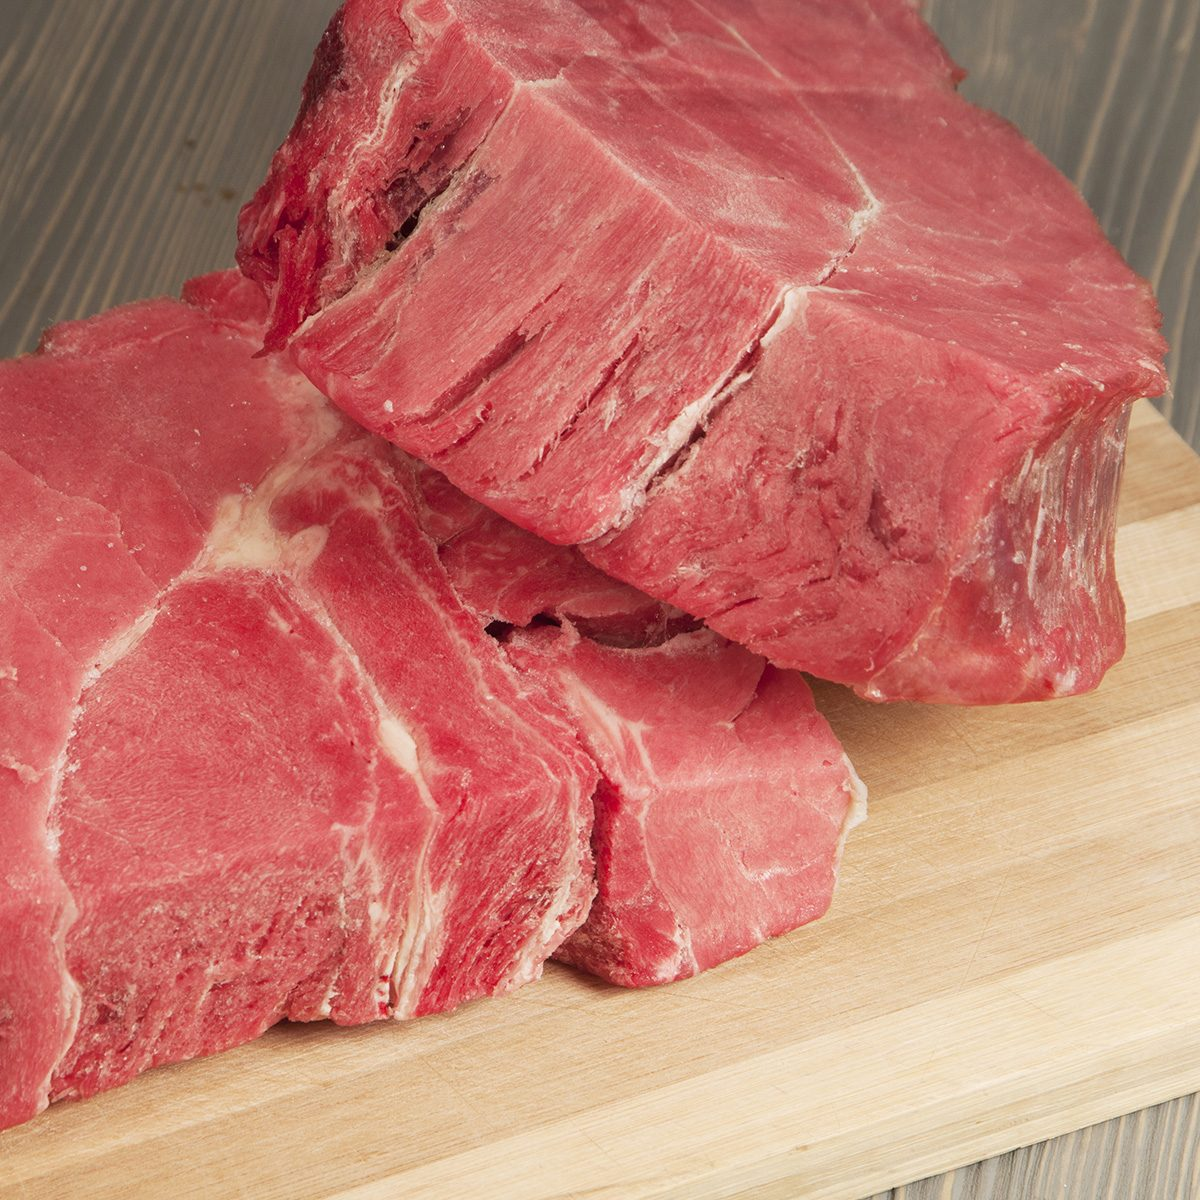 Two pieces of frozen beef on a board; Shutterstock ID 177201707; Job (TFH, TOH, RD, BNB, CWM, CM): TOH